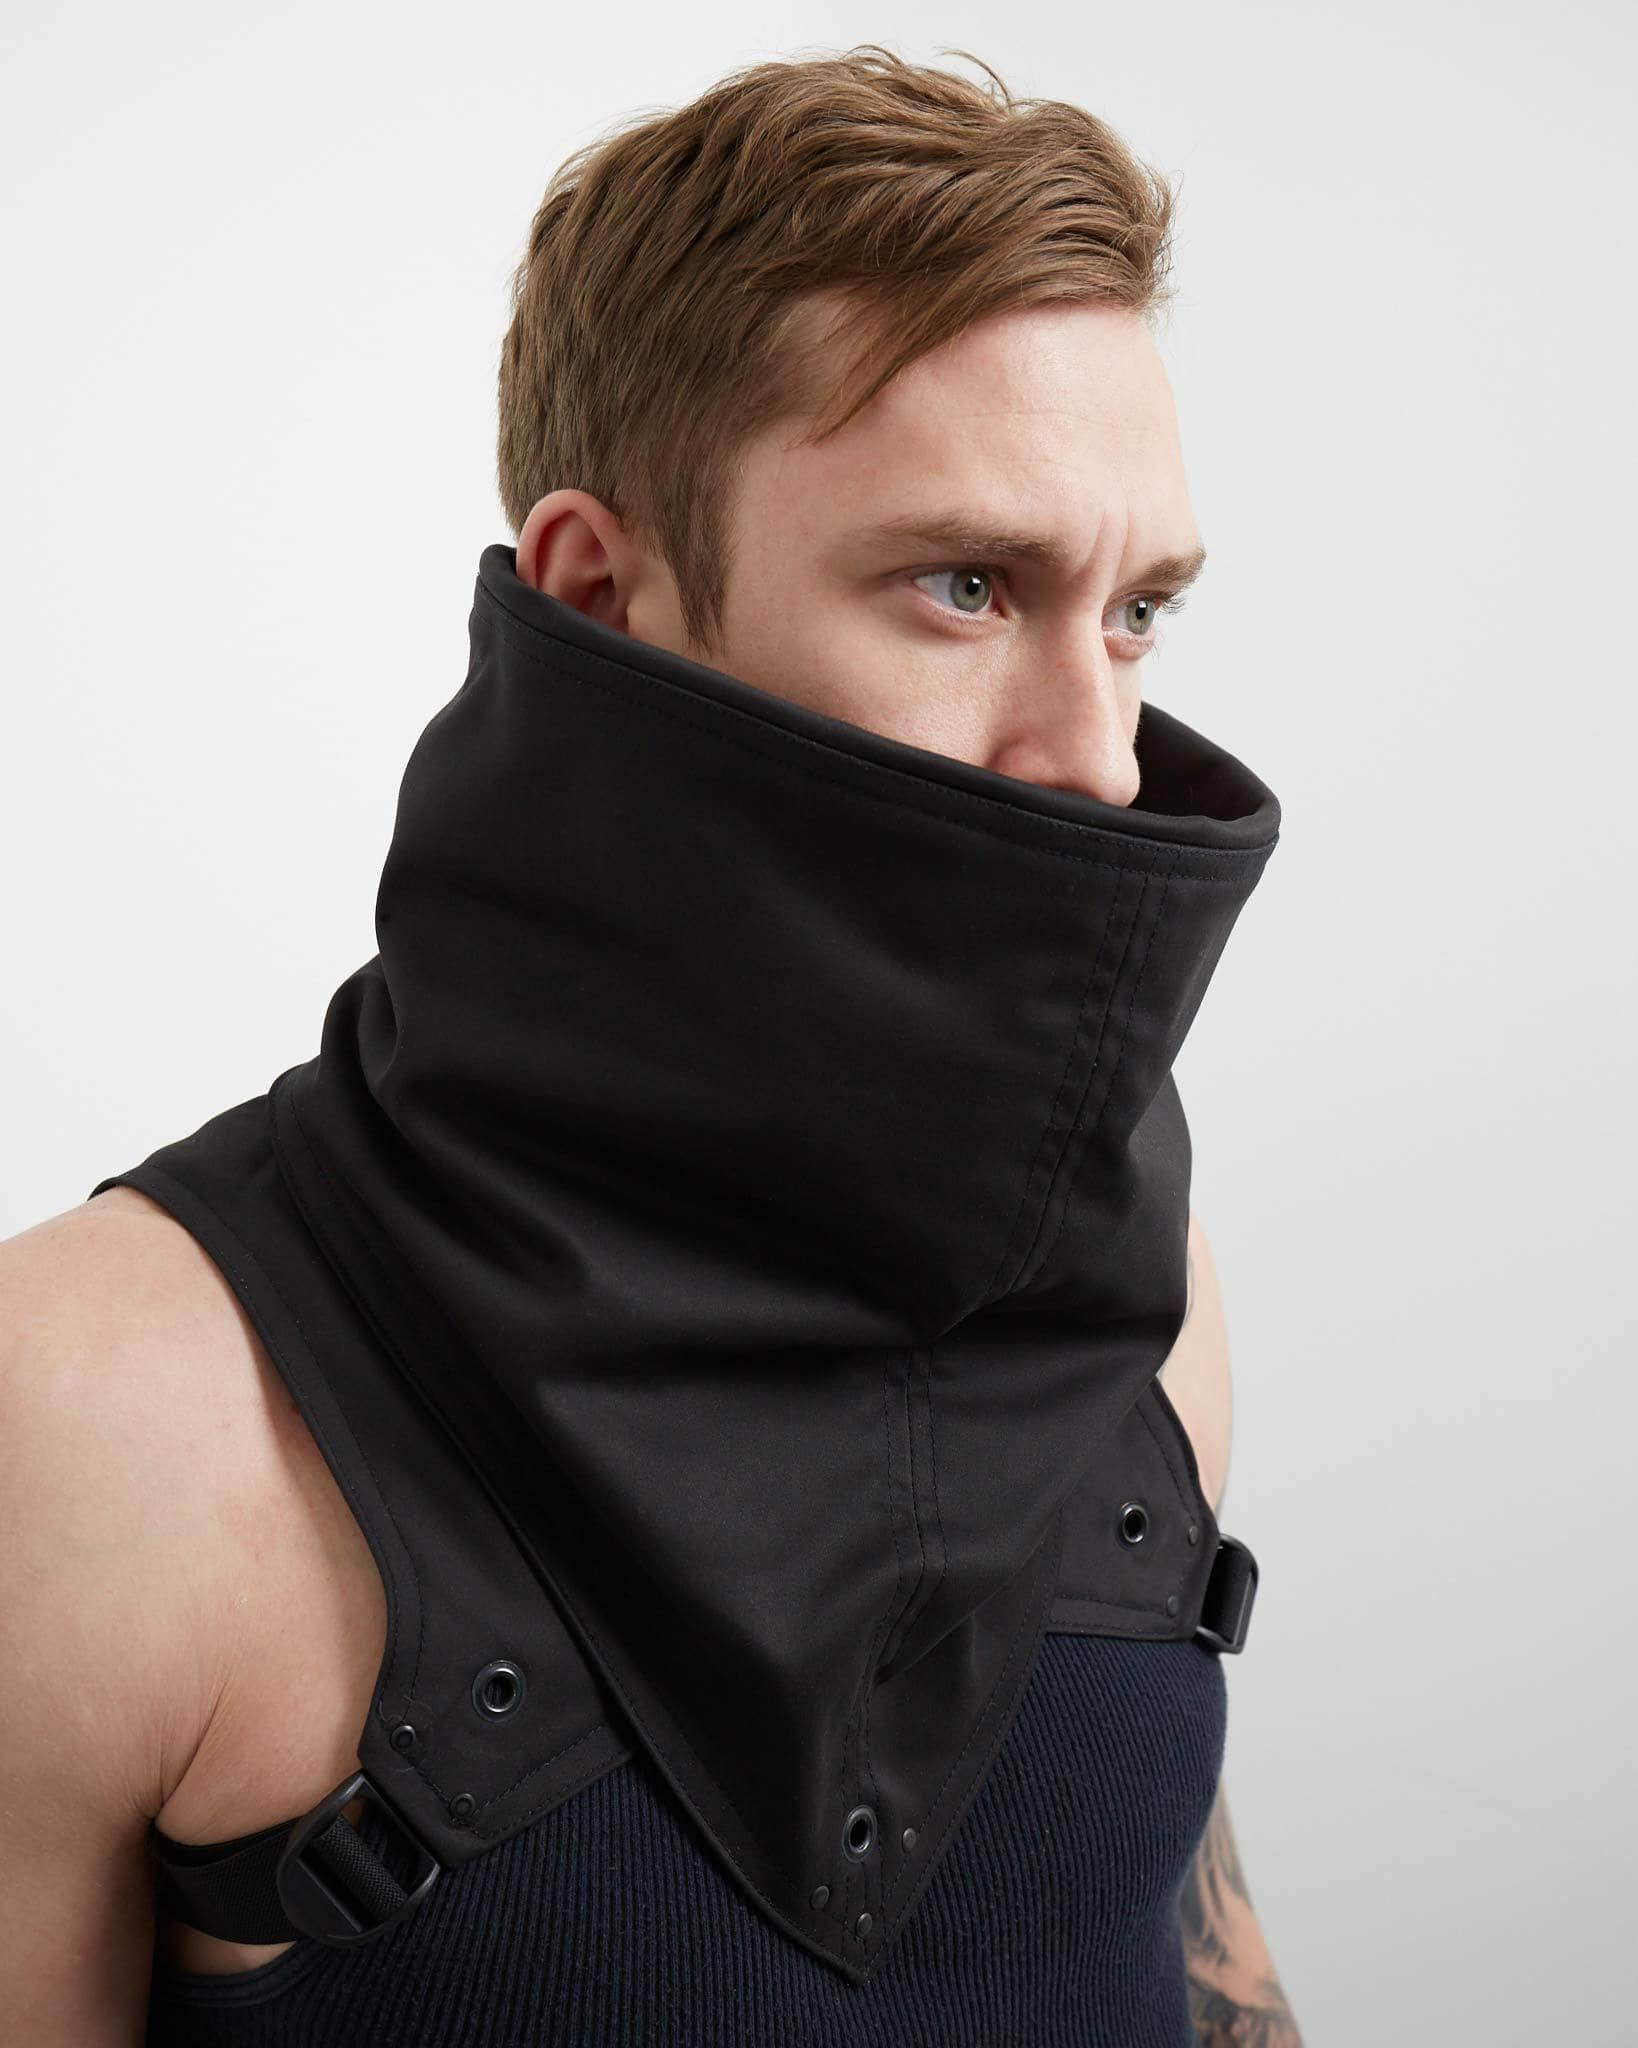 cyberpunk modern clothing accessory